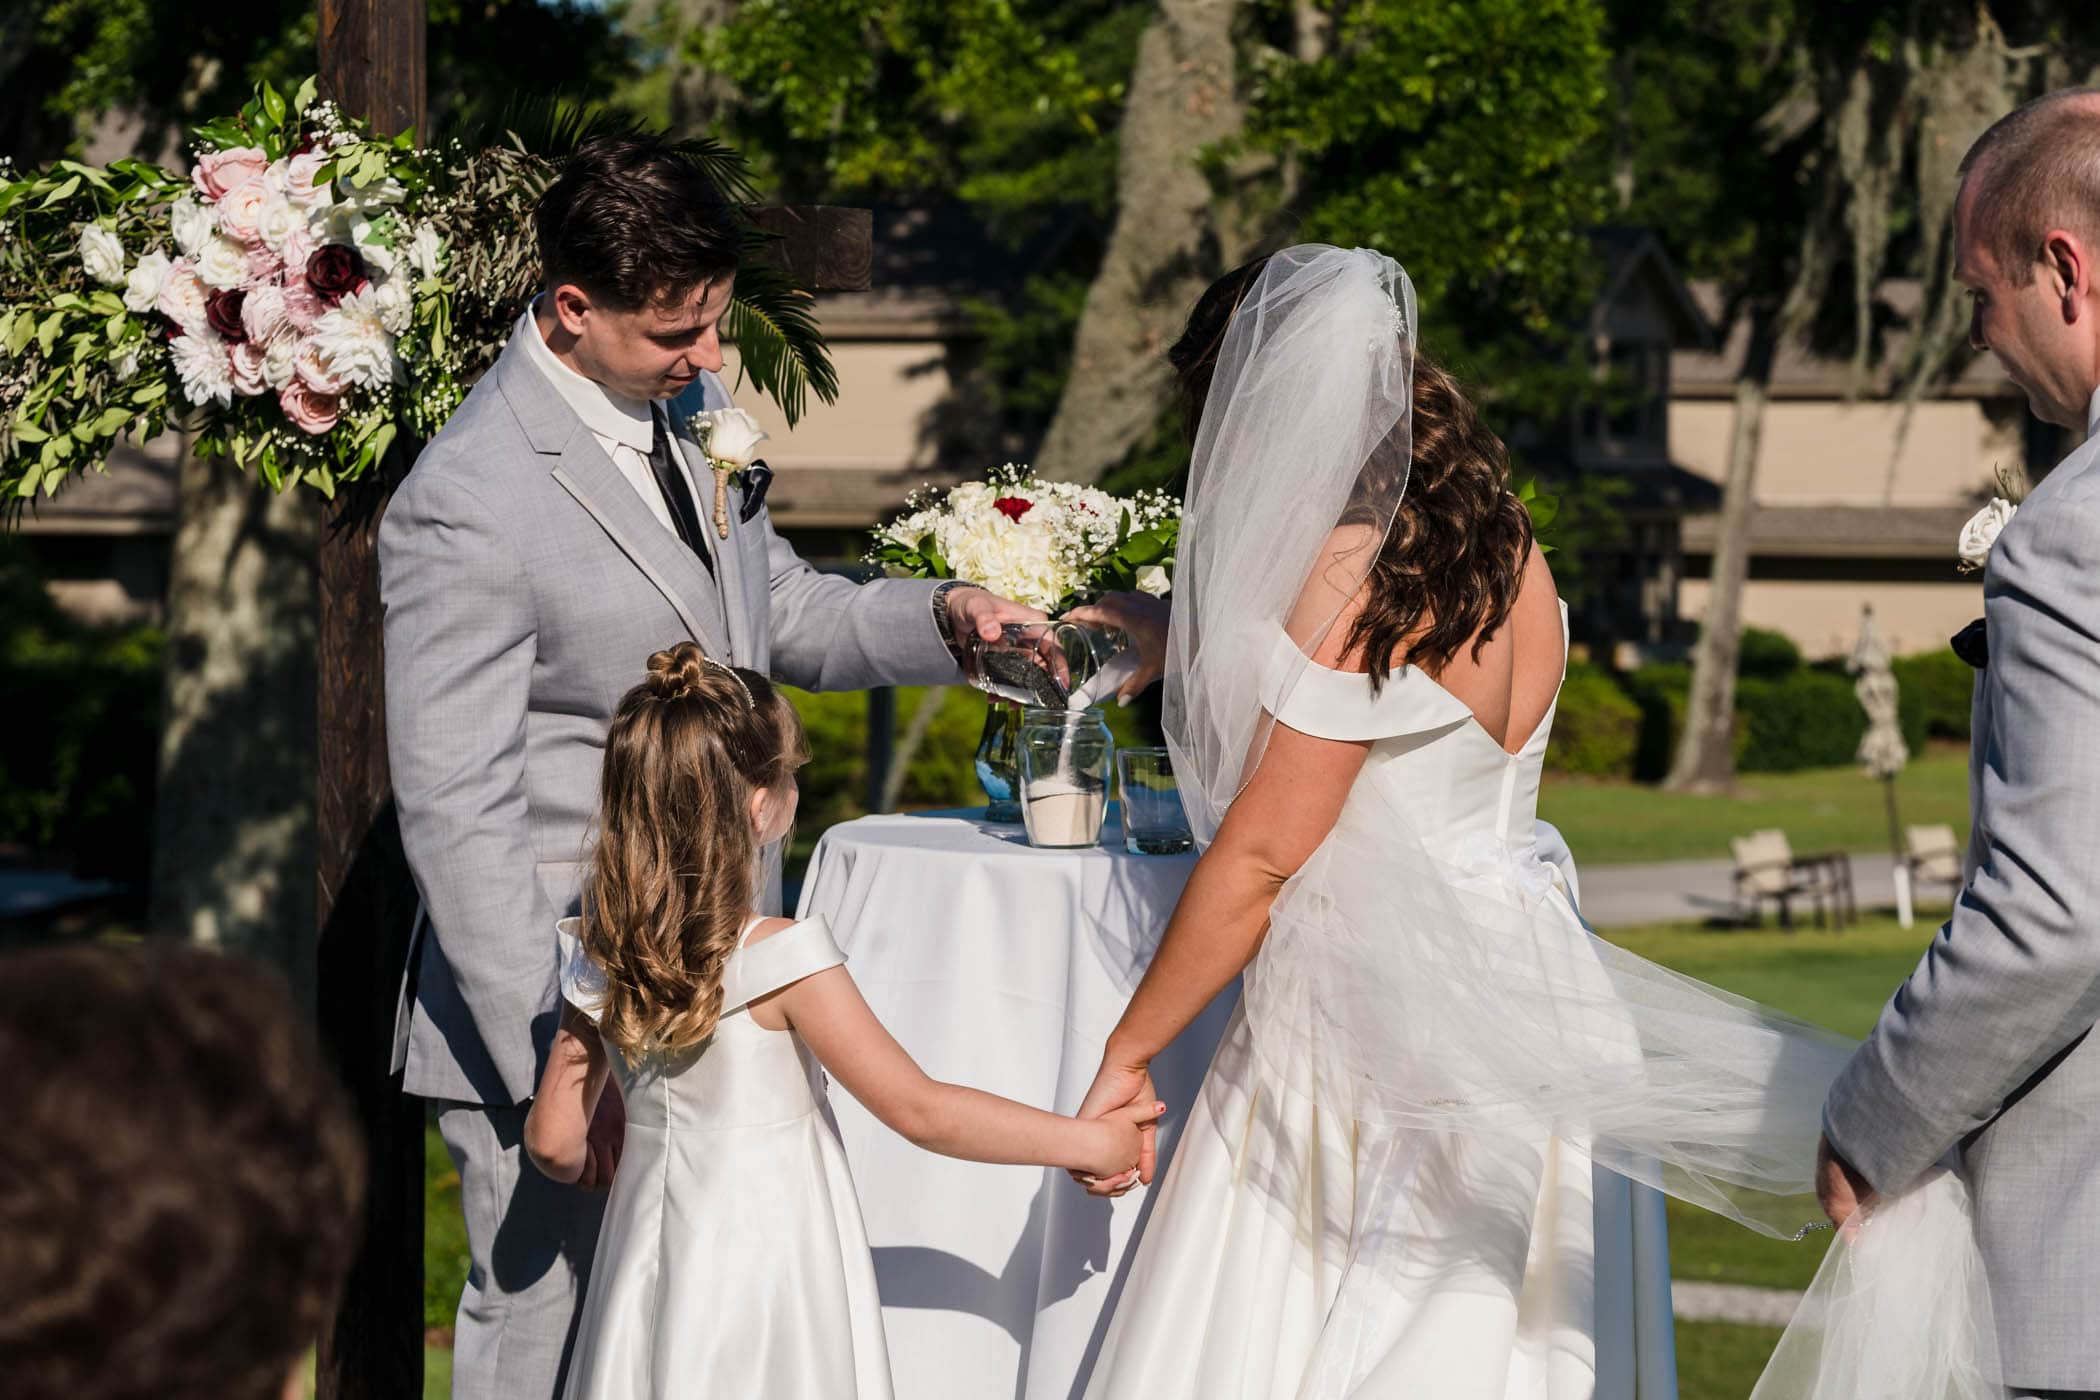 Bride, groom and daughter during sand ceremony at wedding Dataw Island Club House by Susan DeLoach Photography SC wedding photographers